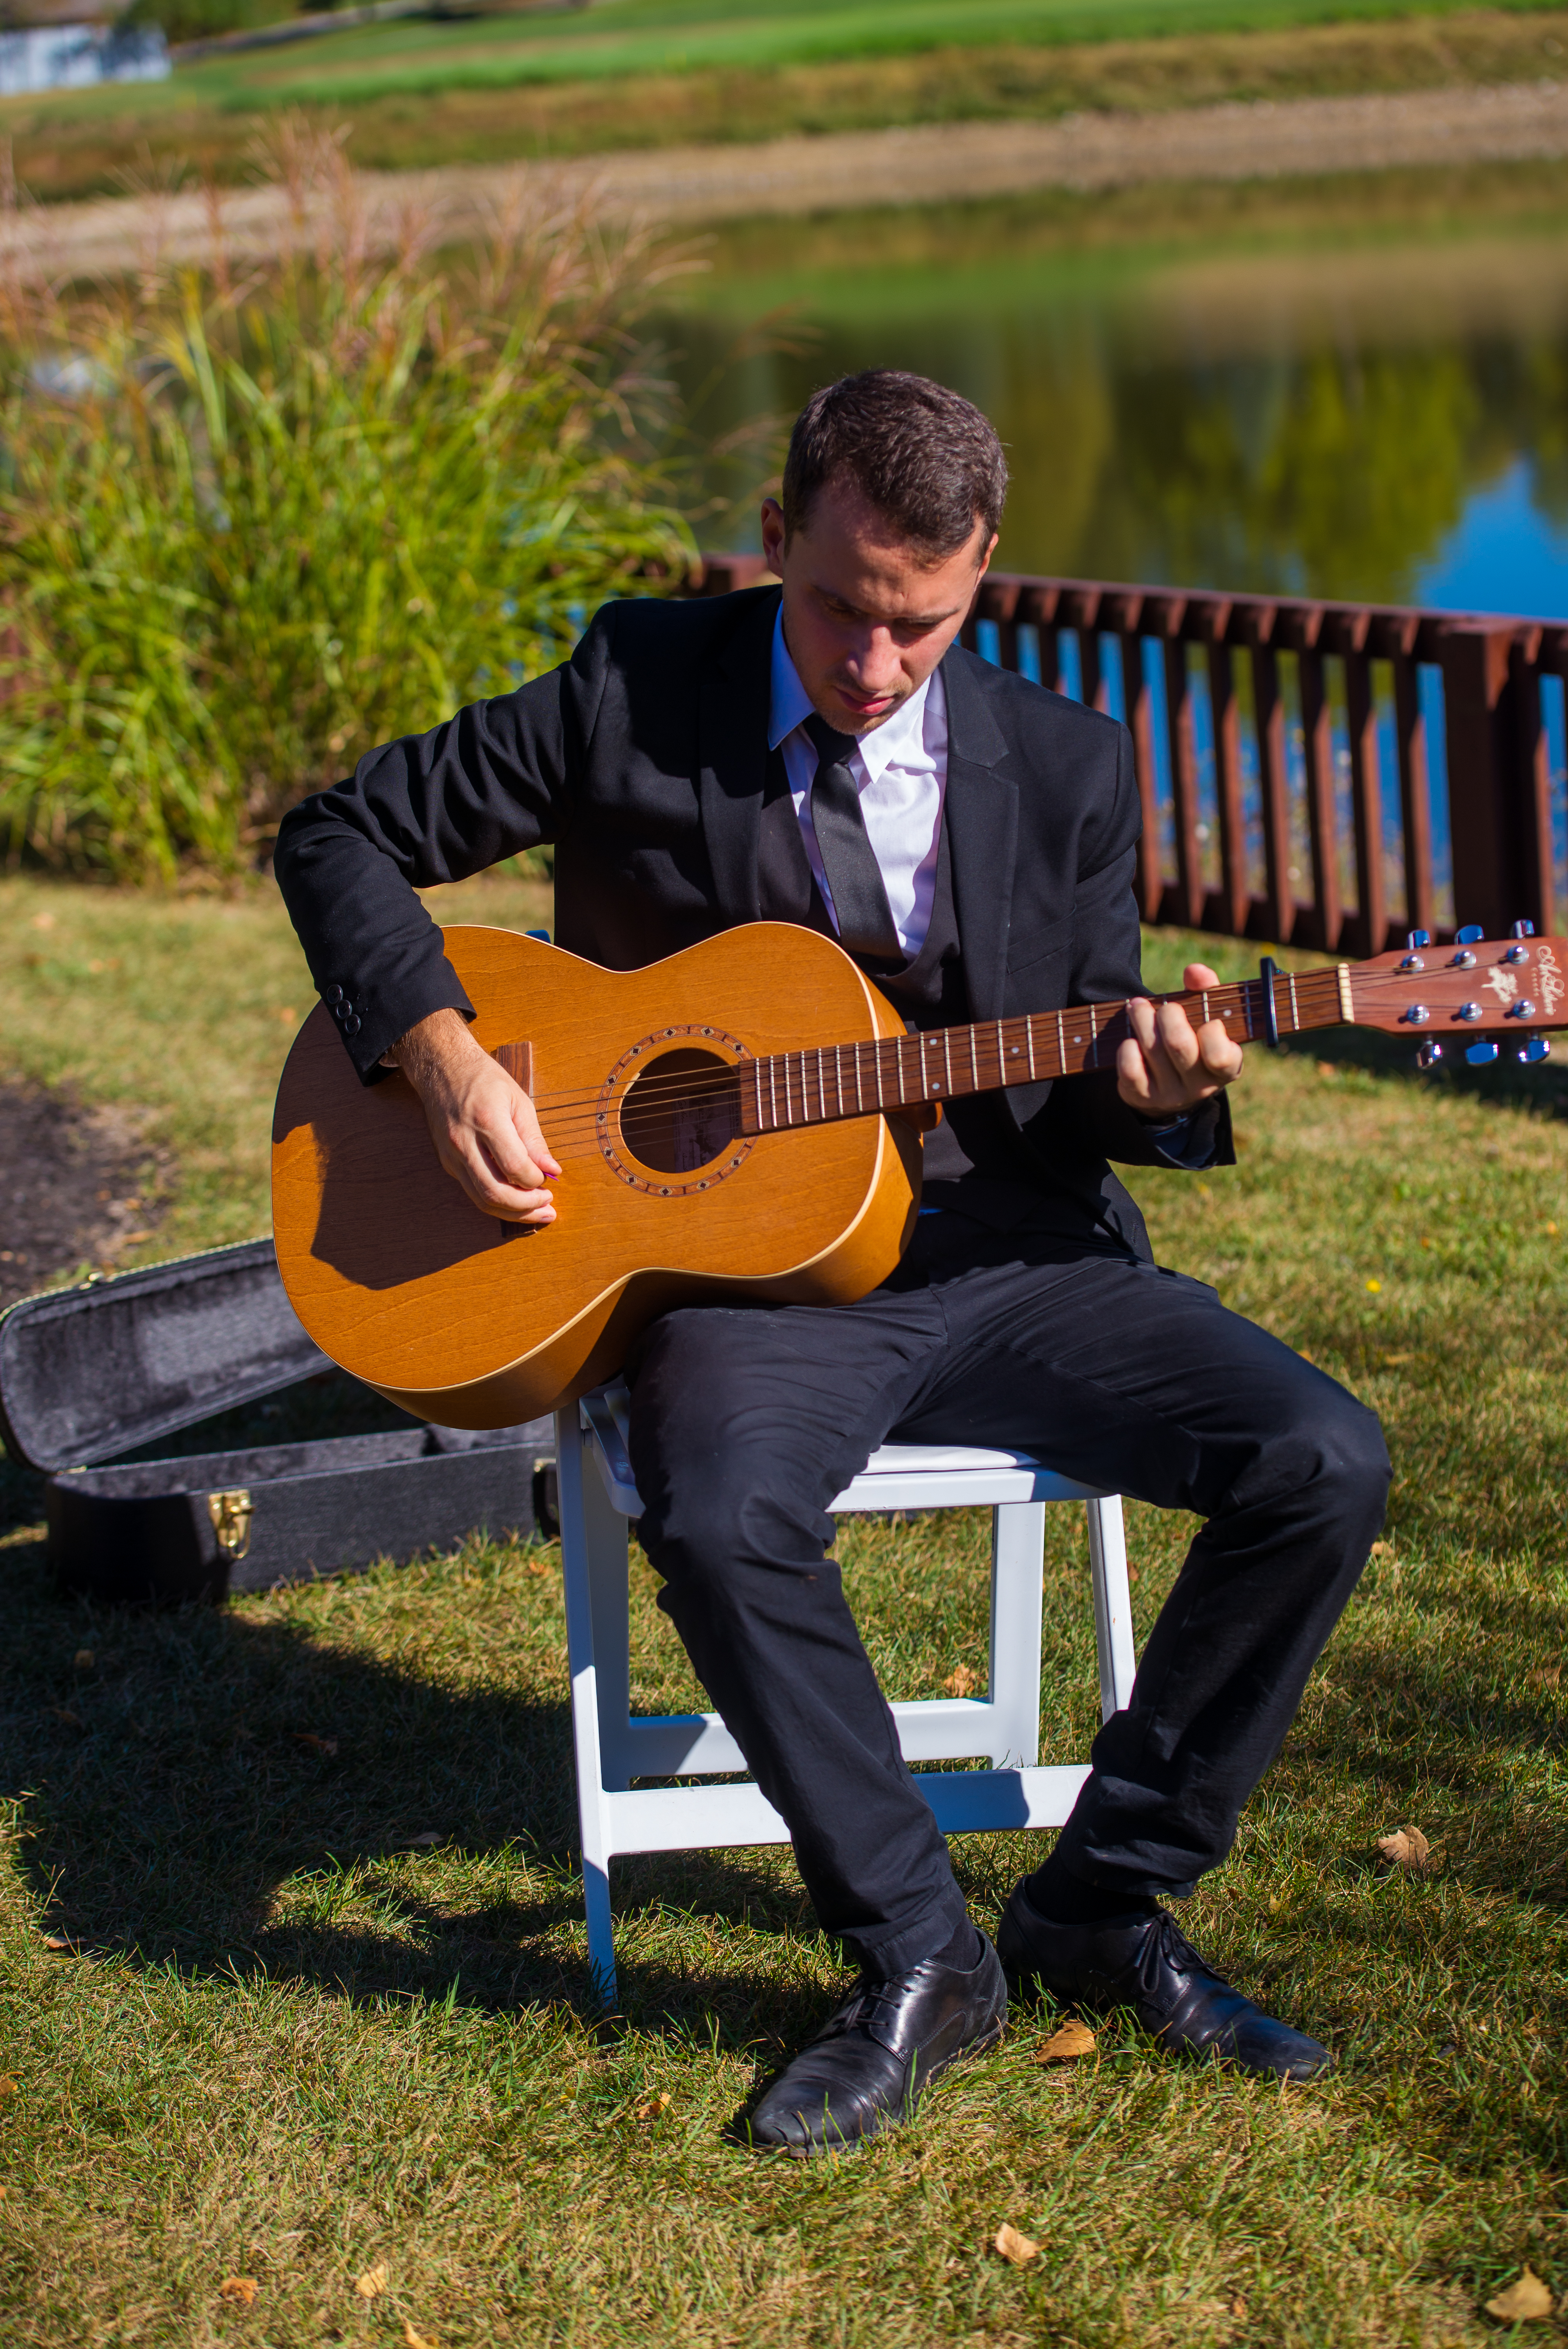 Solo Guitar for a wedding Ceremony!